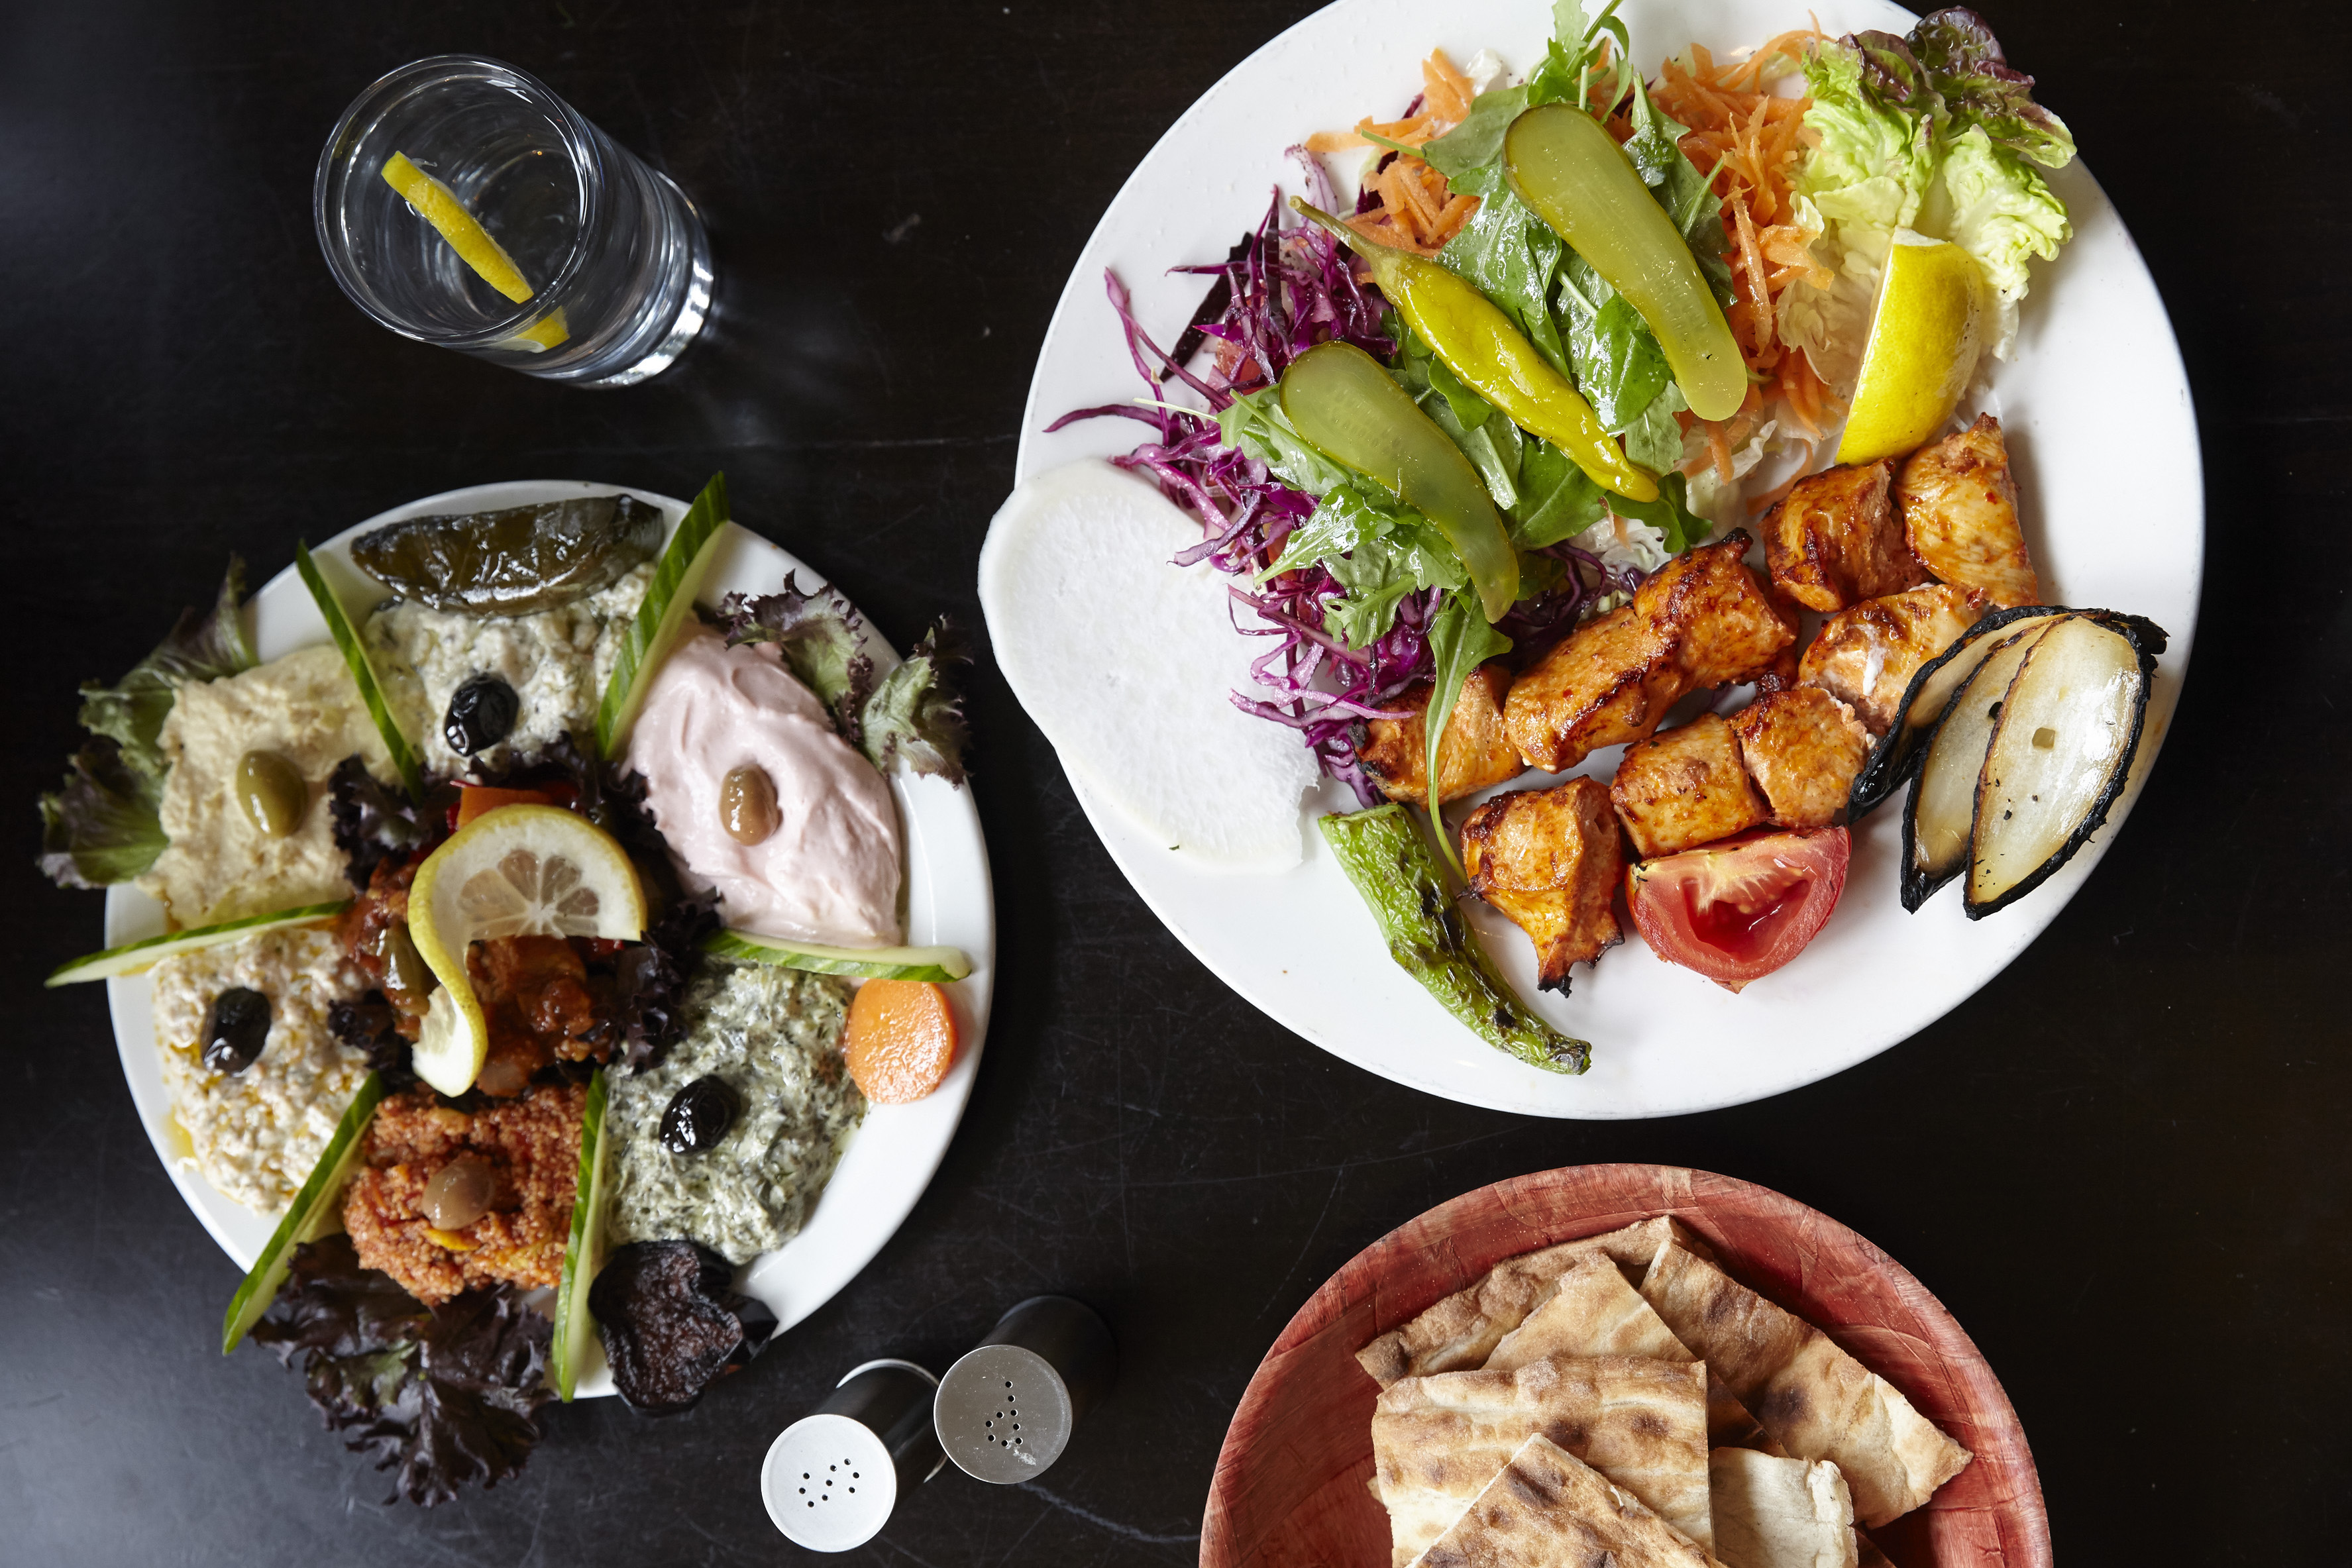 Ocakbasi and mezze at Mangal 2, the Turkish restaurant in Dalston that that forms part of the best 24 hour restaurant travel itinerary for London — where to eat with one day in the city